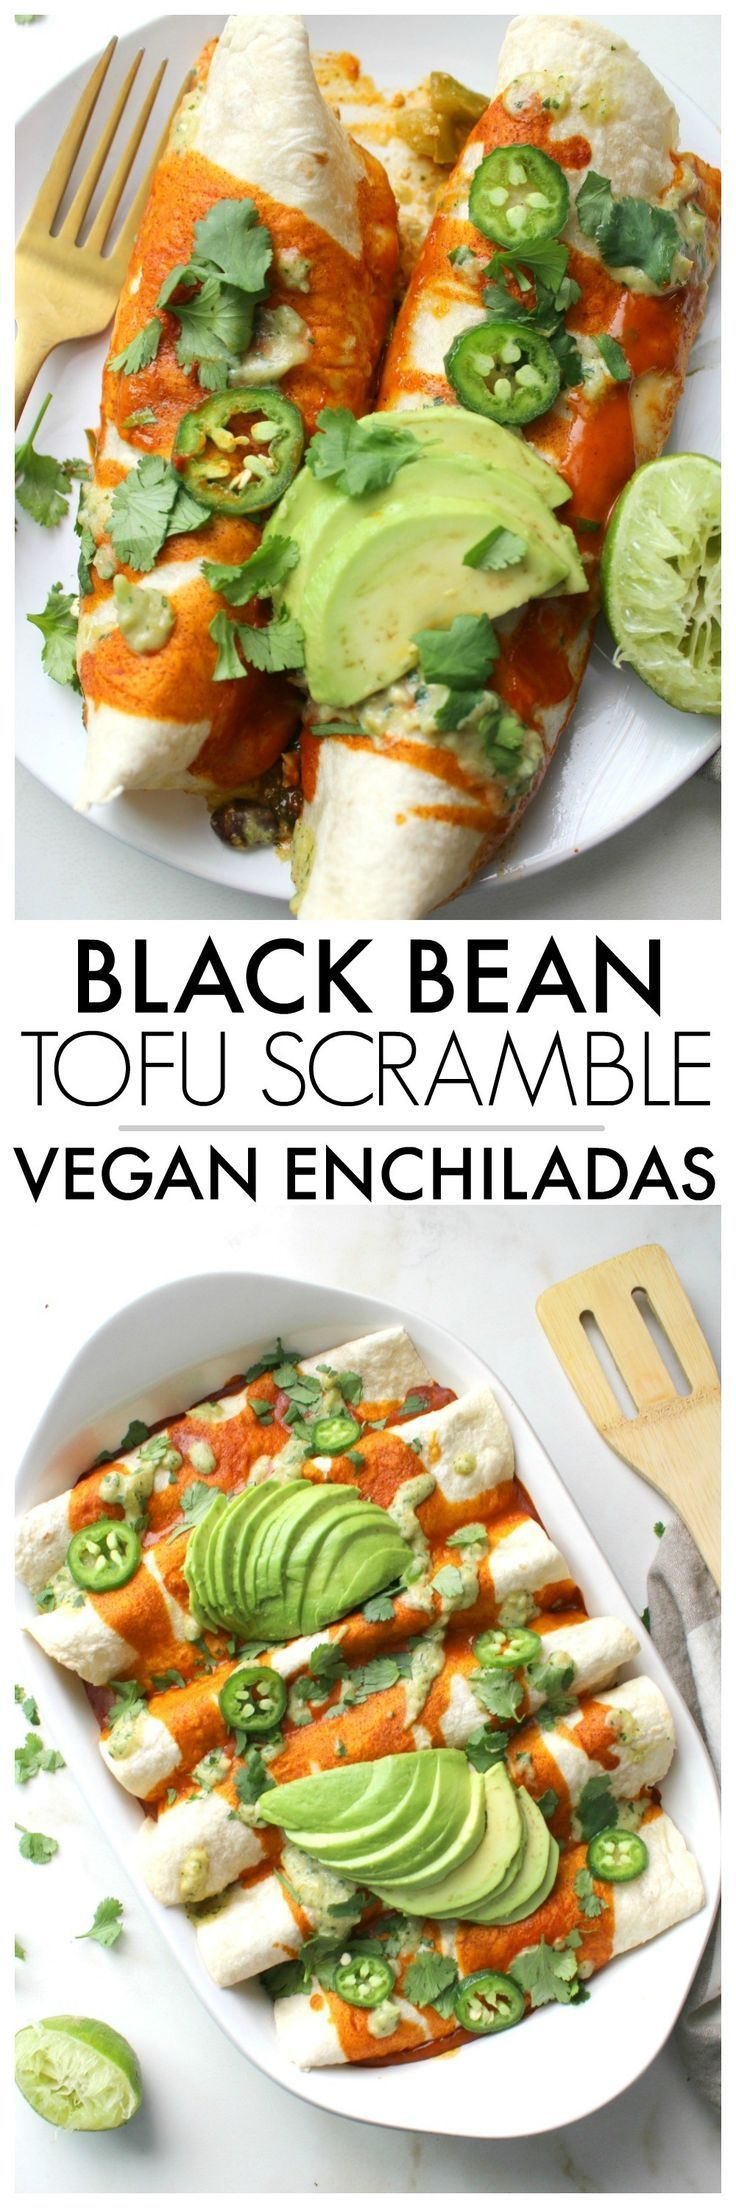 These Black Bean Tofu Scramble Vegan Enchiladas are loaded with a hearty tofu scramble of black beans & veggies and are topped off with a green chili cream sauce | ThisSavoryVegan.com #vegan #veganenchiladas